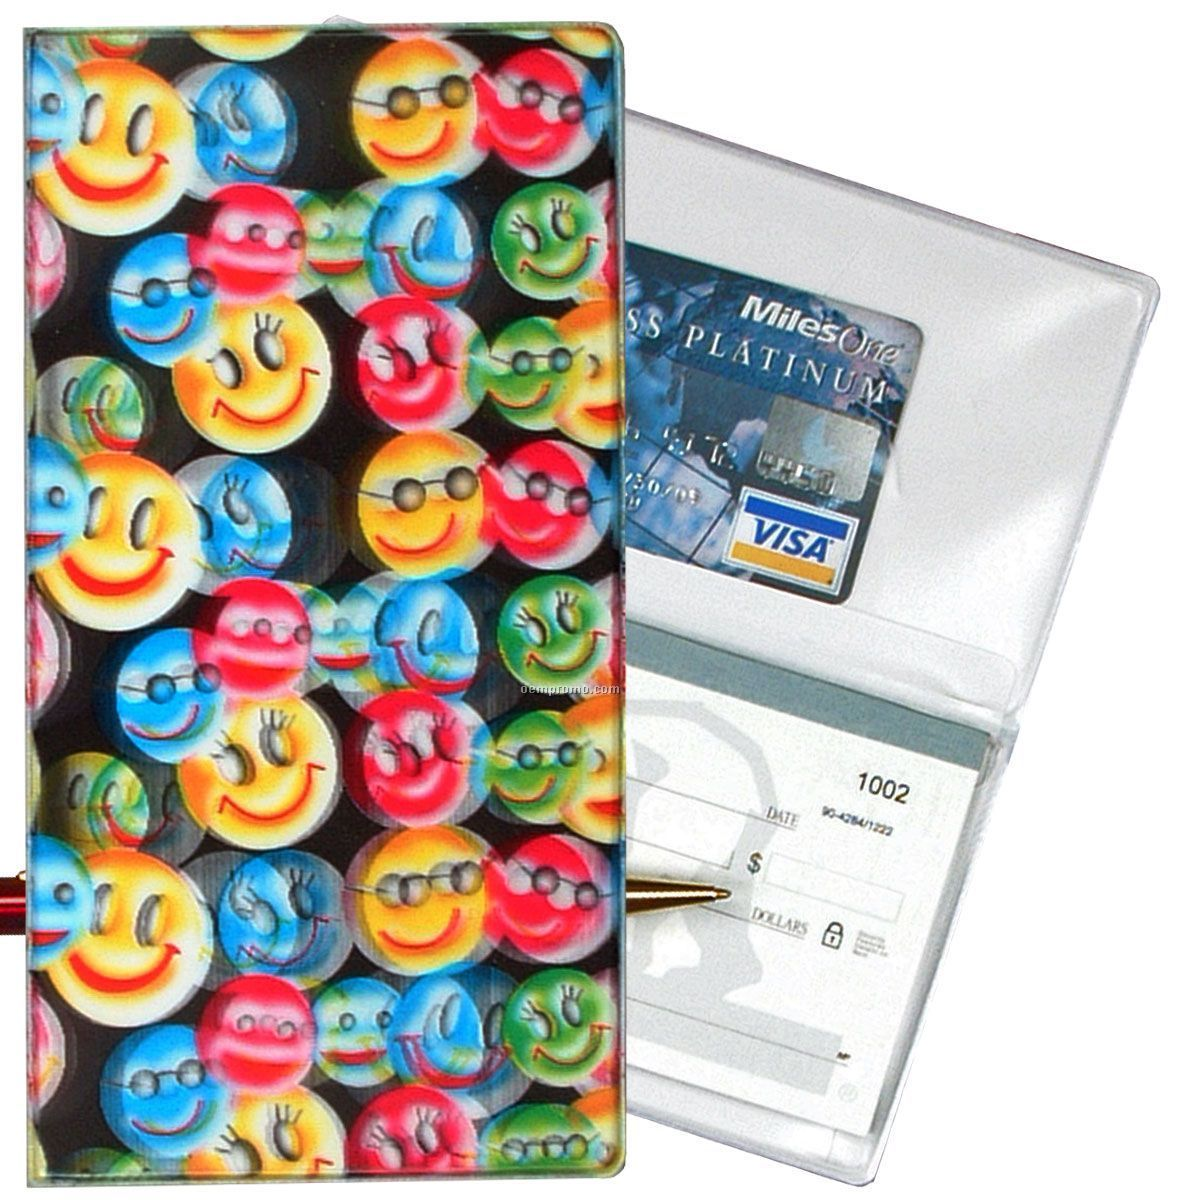 3d Lenticular Checkbook Cover (Sunglass Smiley Faces)